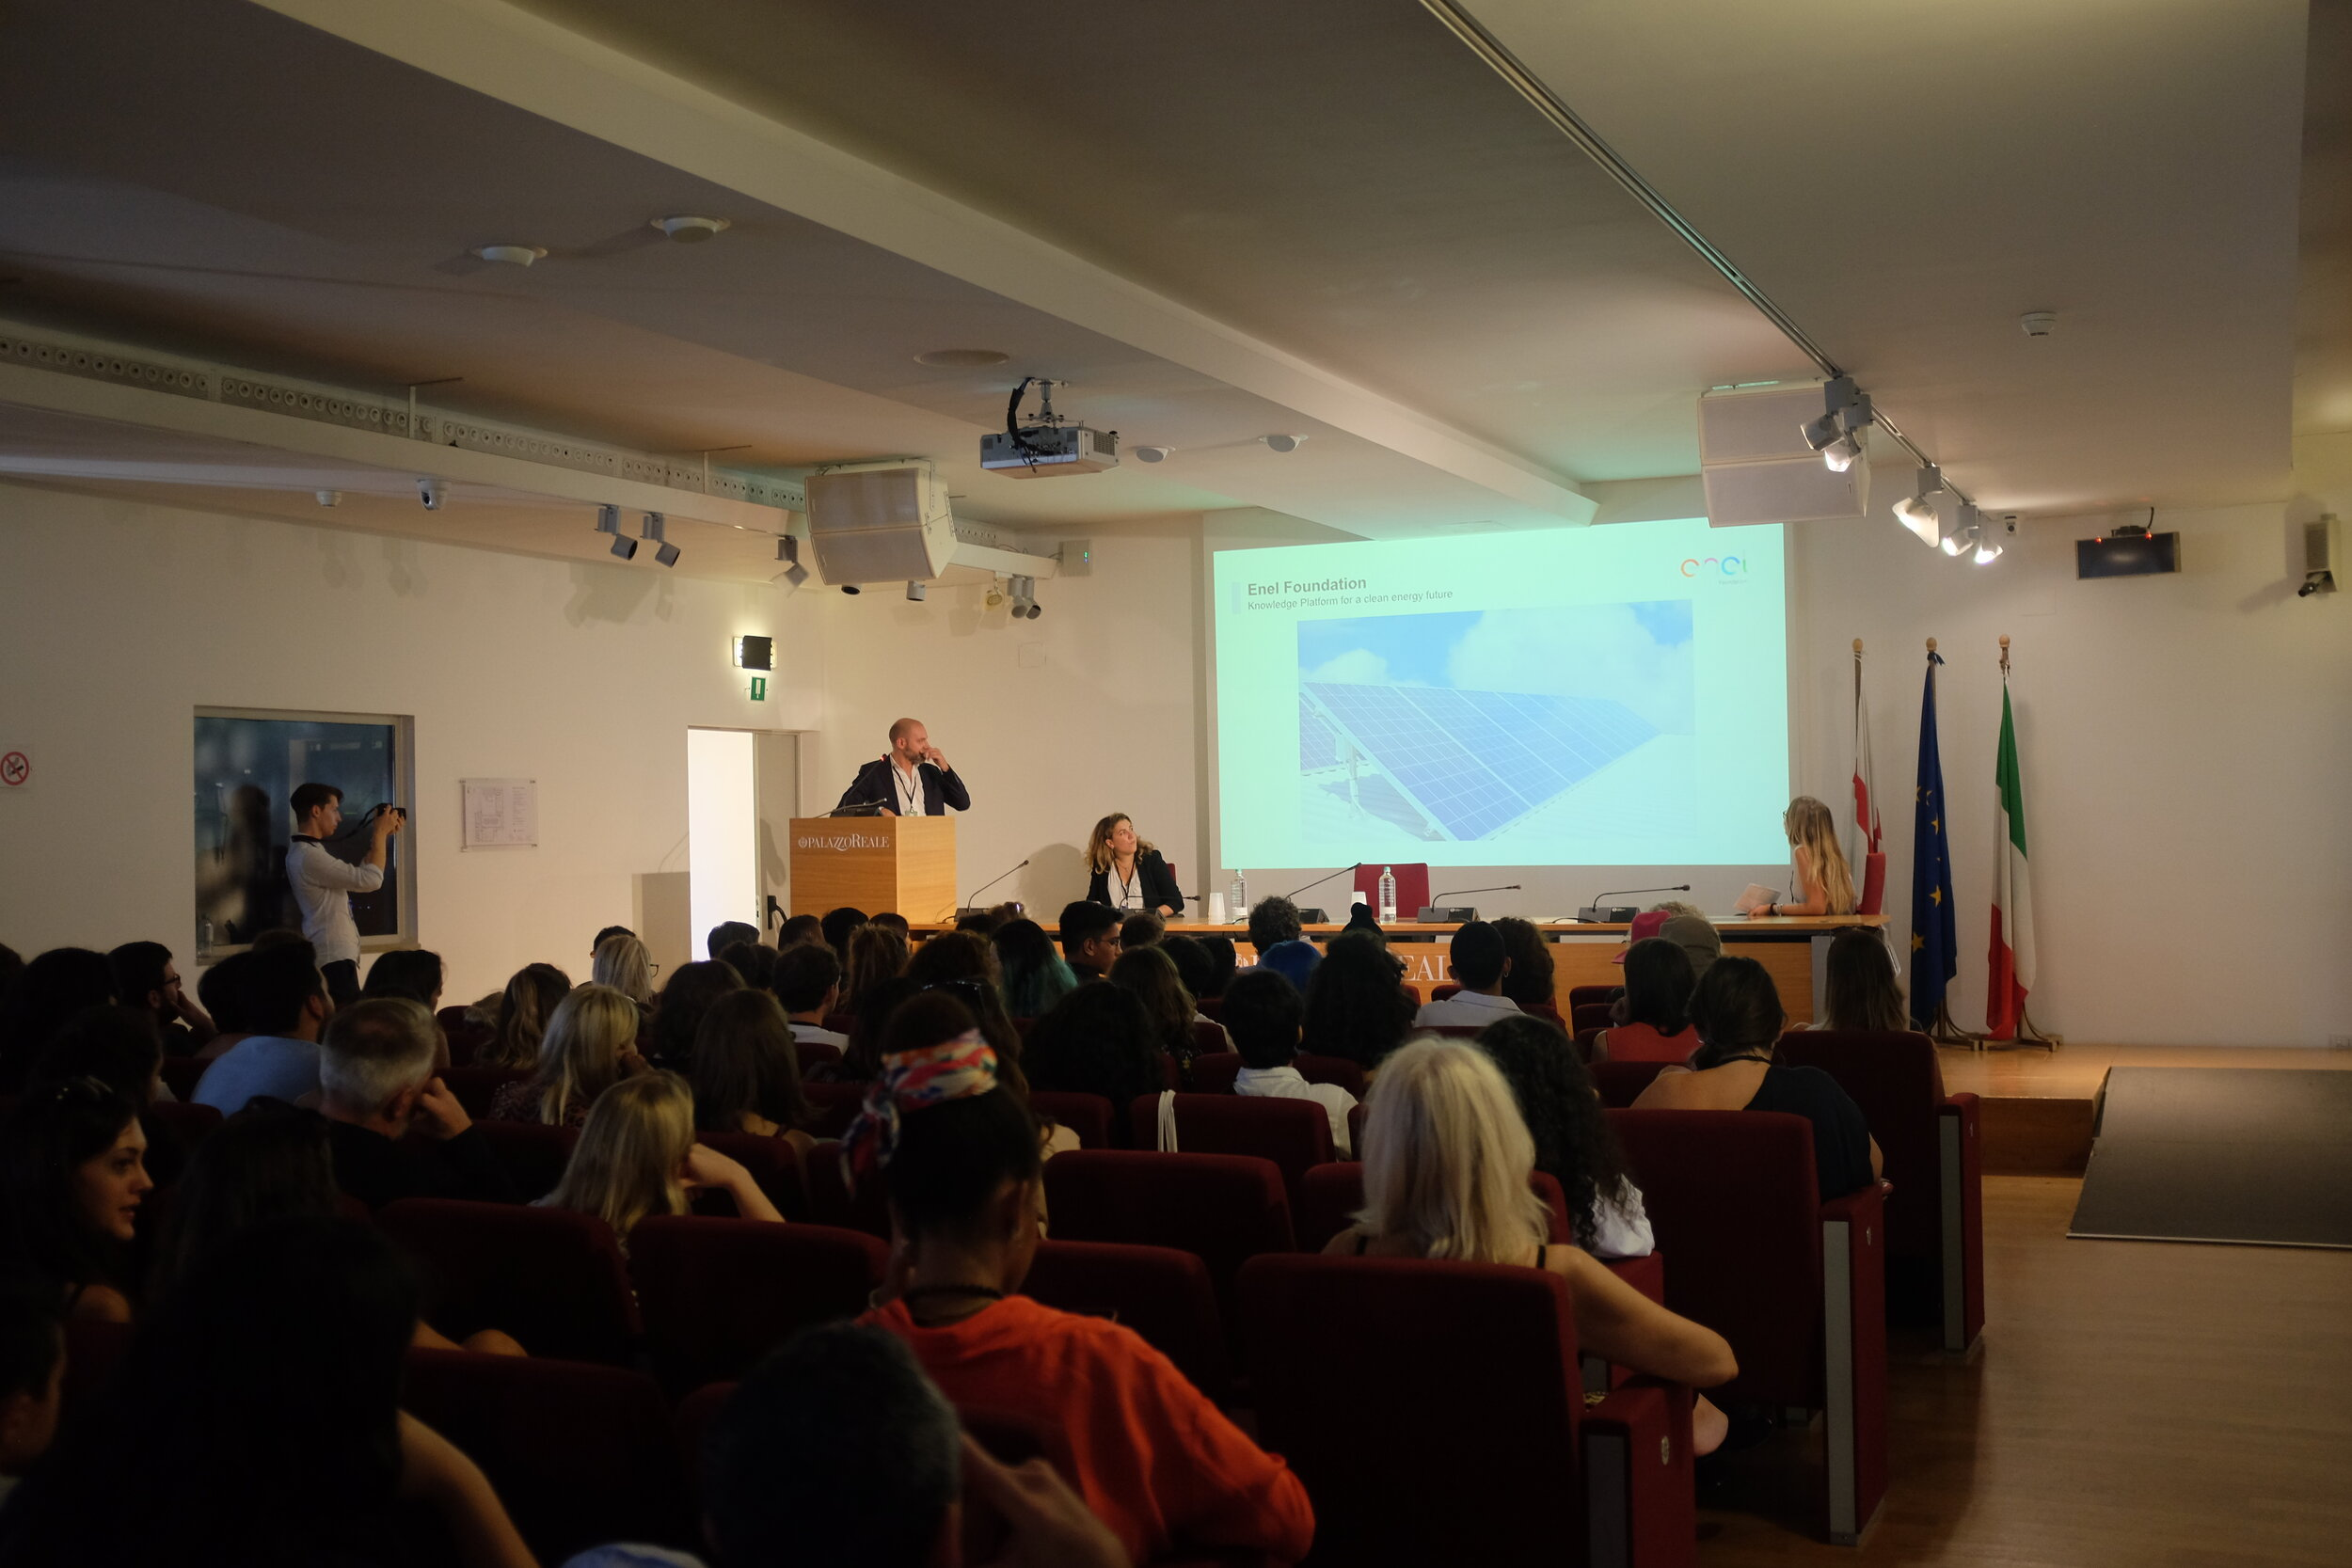 - Opening Ceremony at Palazzo RealeGuest speakers from UNRIC, Enel Foundation and UNAFF.